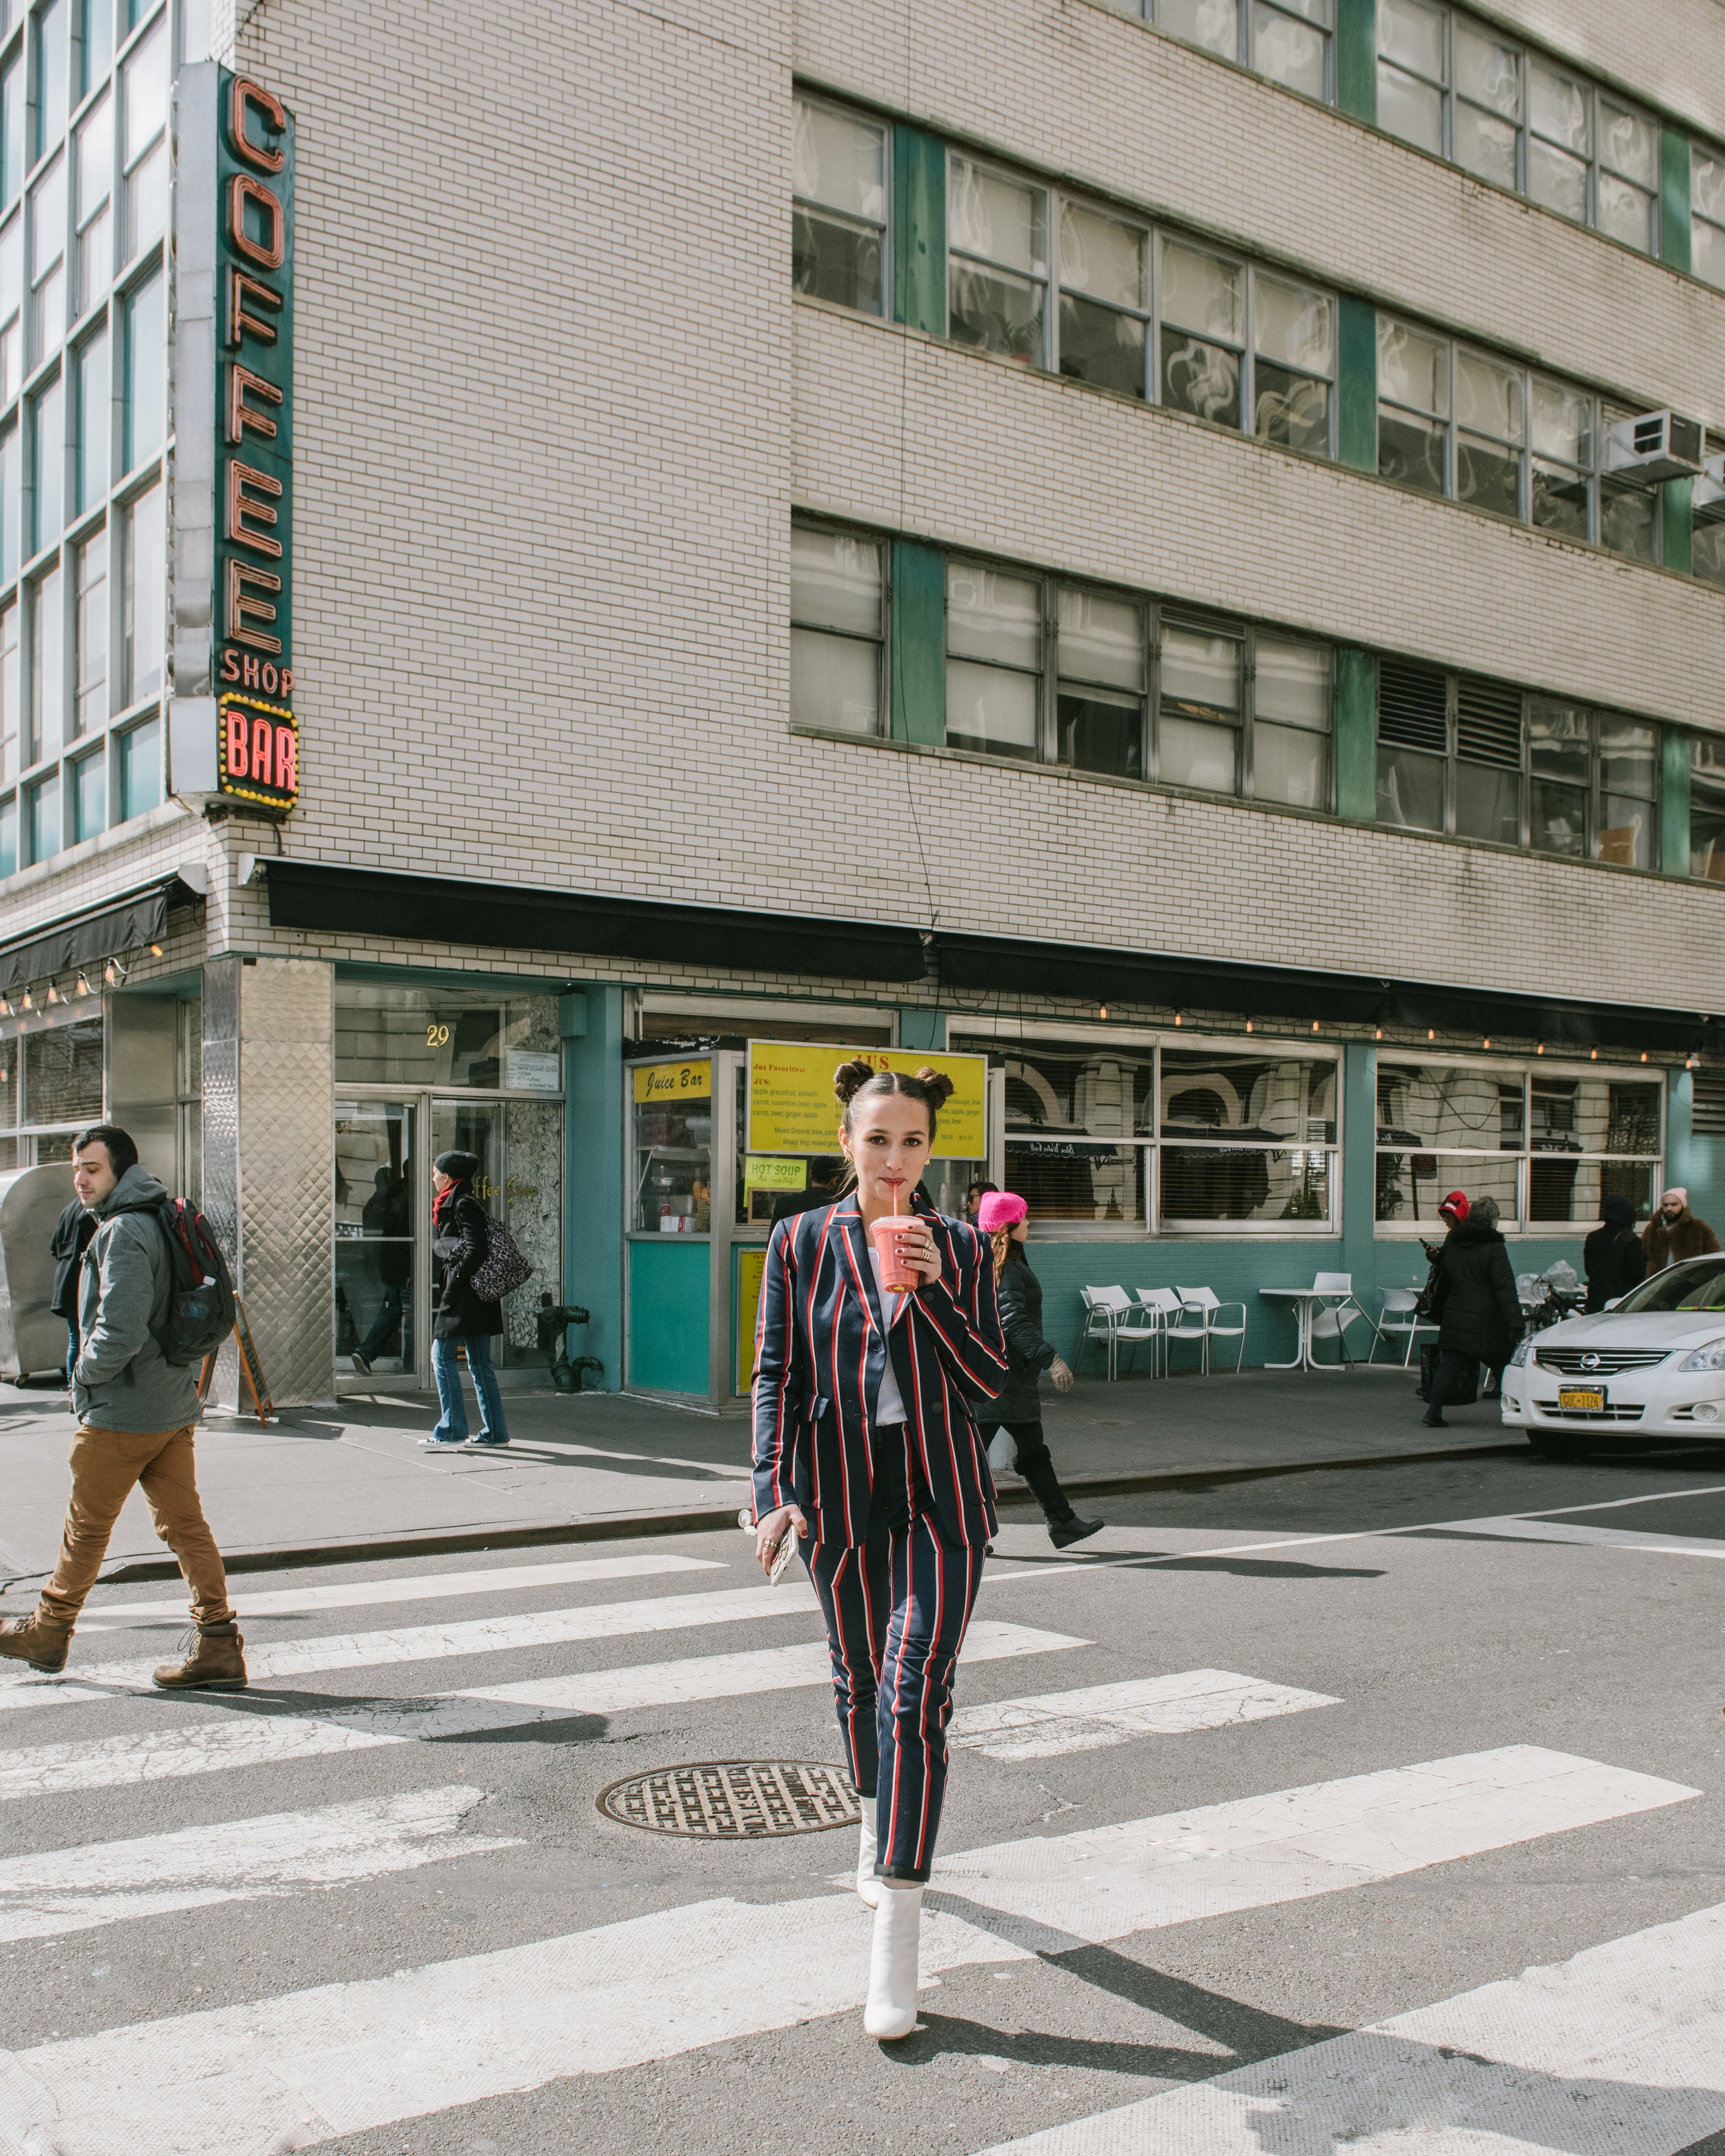 SOPHIE BICKLEY YIN 2MY YANG SISTER FASHION BLOGGERS NYC MODERN AMERICANA TREND FOR SHOPBOP POST